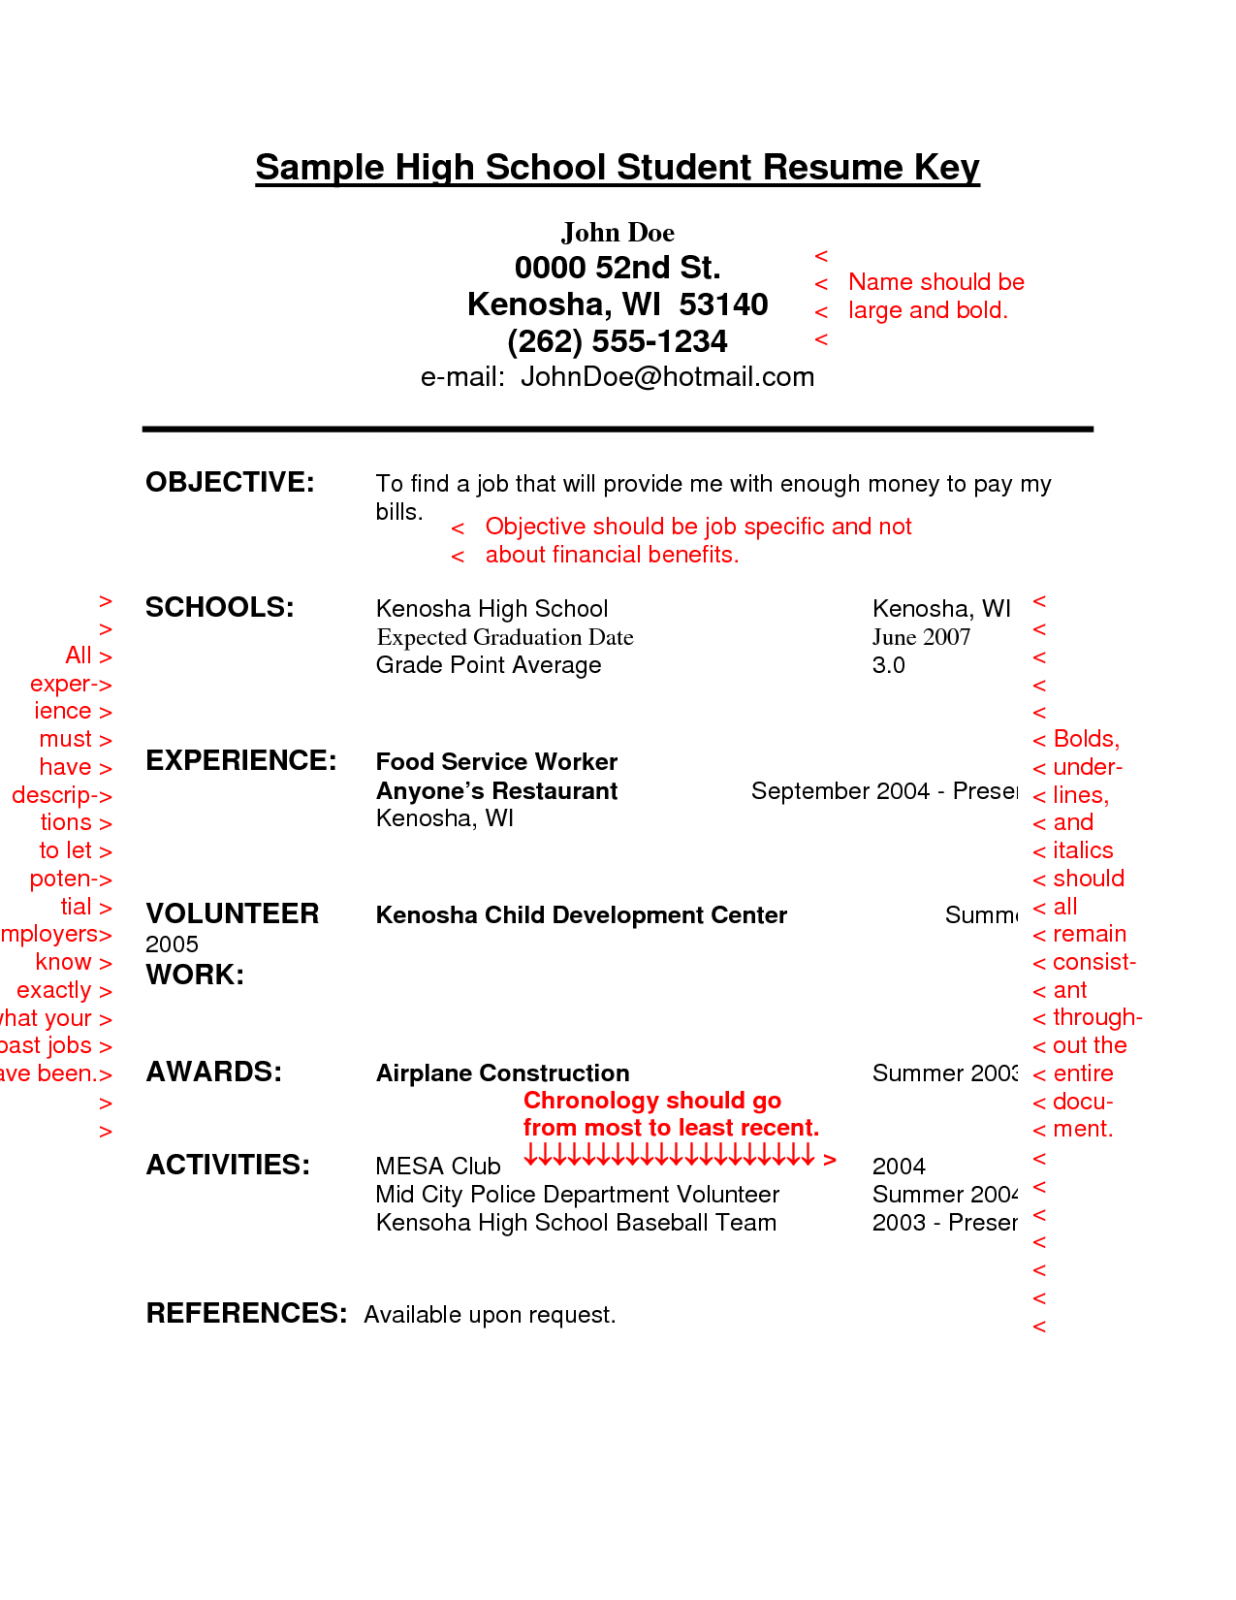 11 High School Student Resume Examples 11 High School Student Resume Examples High School Student Resume Examples 13 The Mainichi Shimbun Answers Some Acce Di 2020